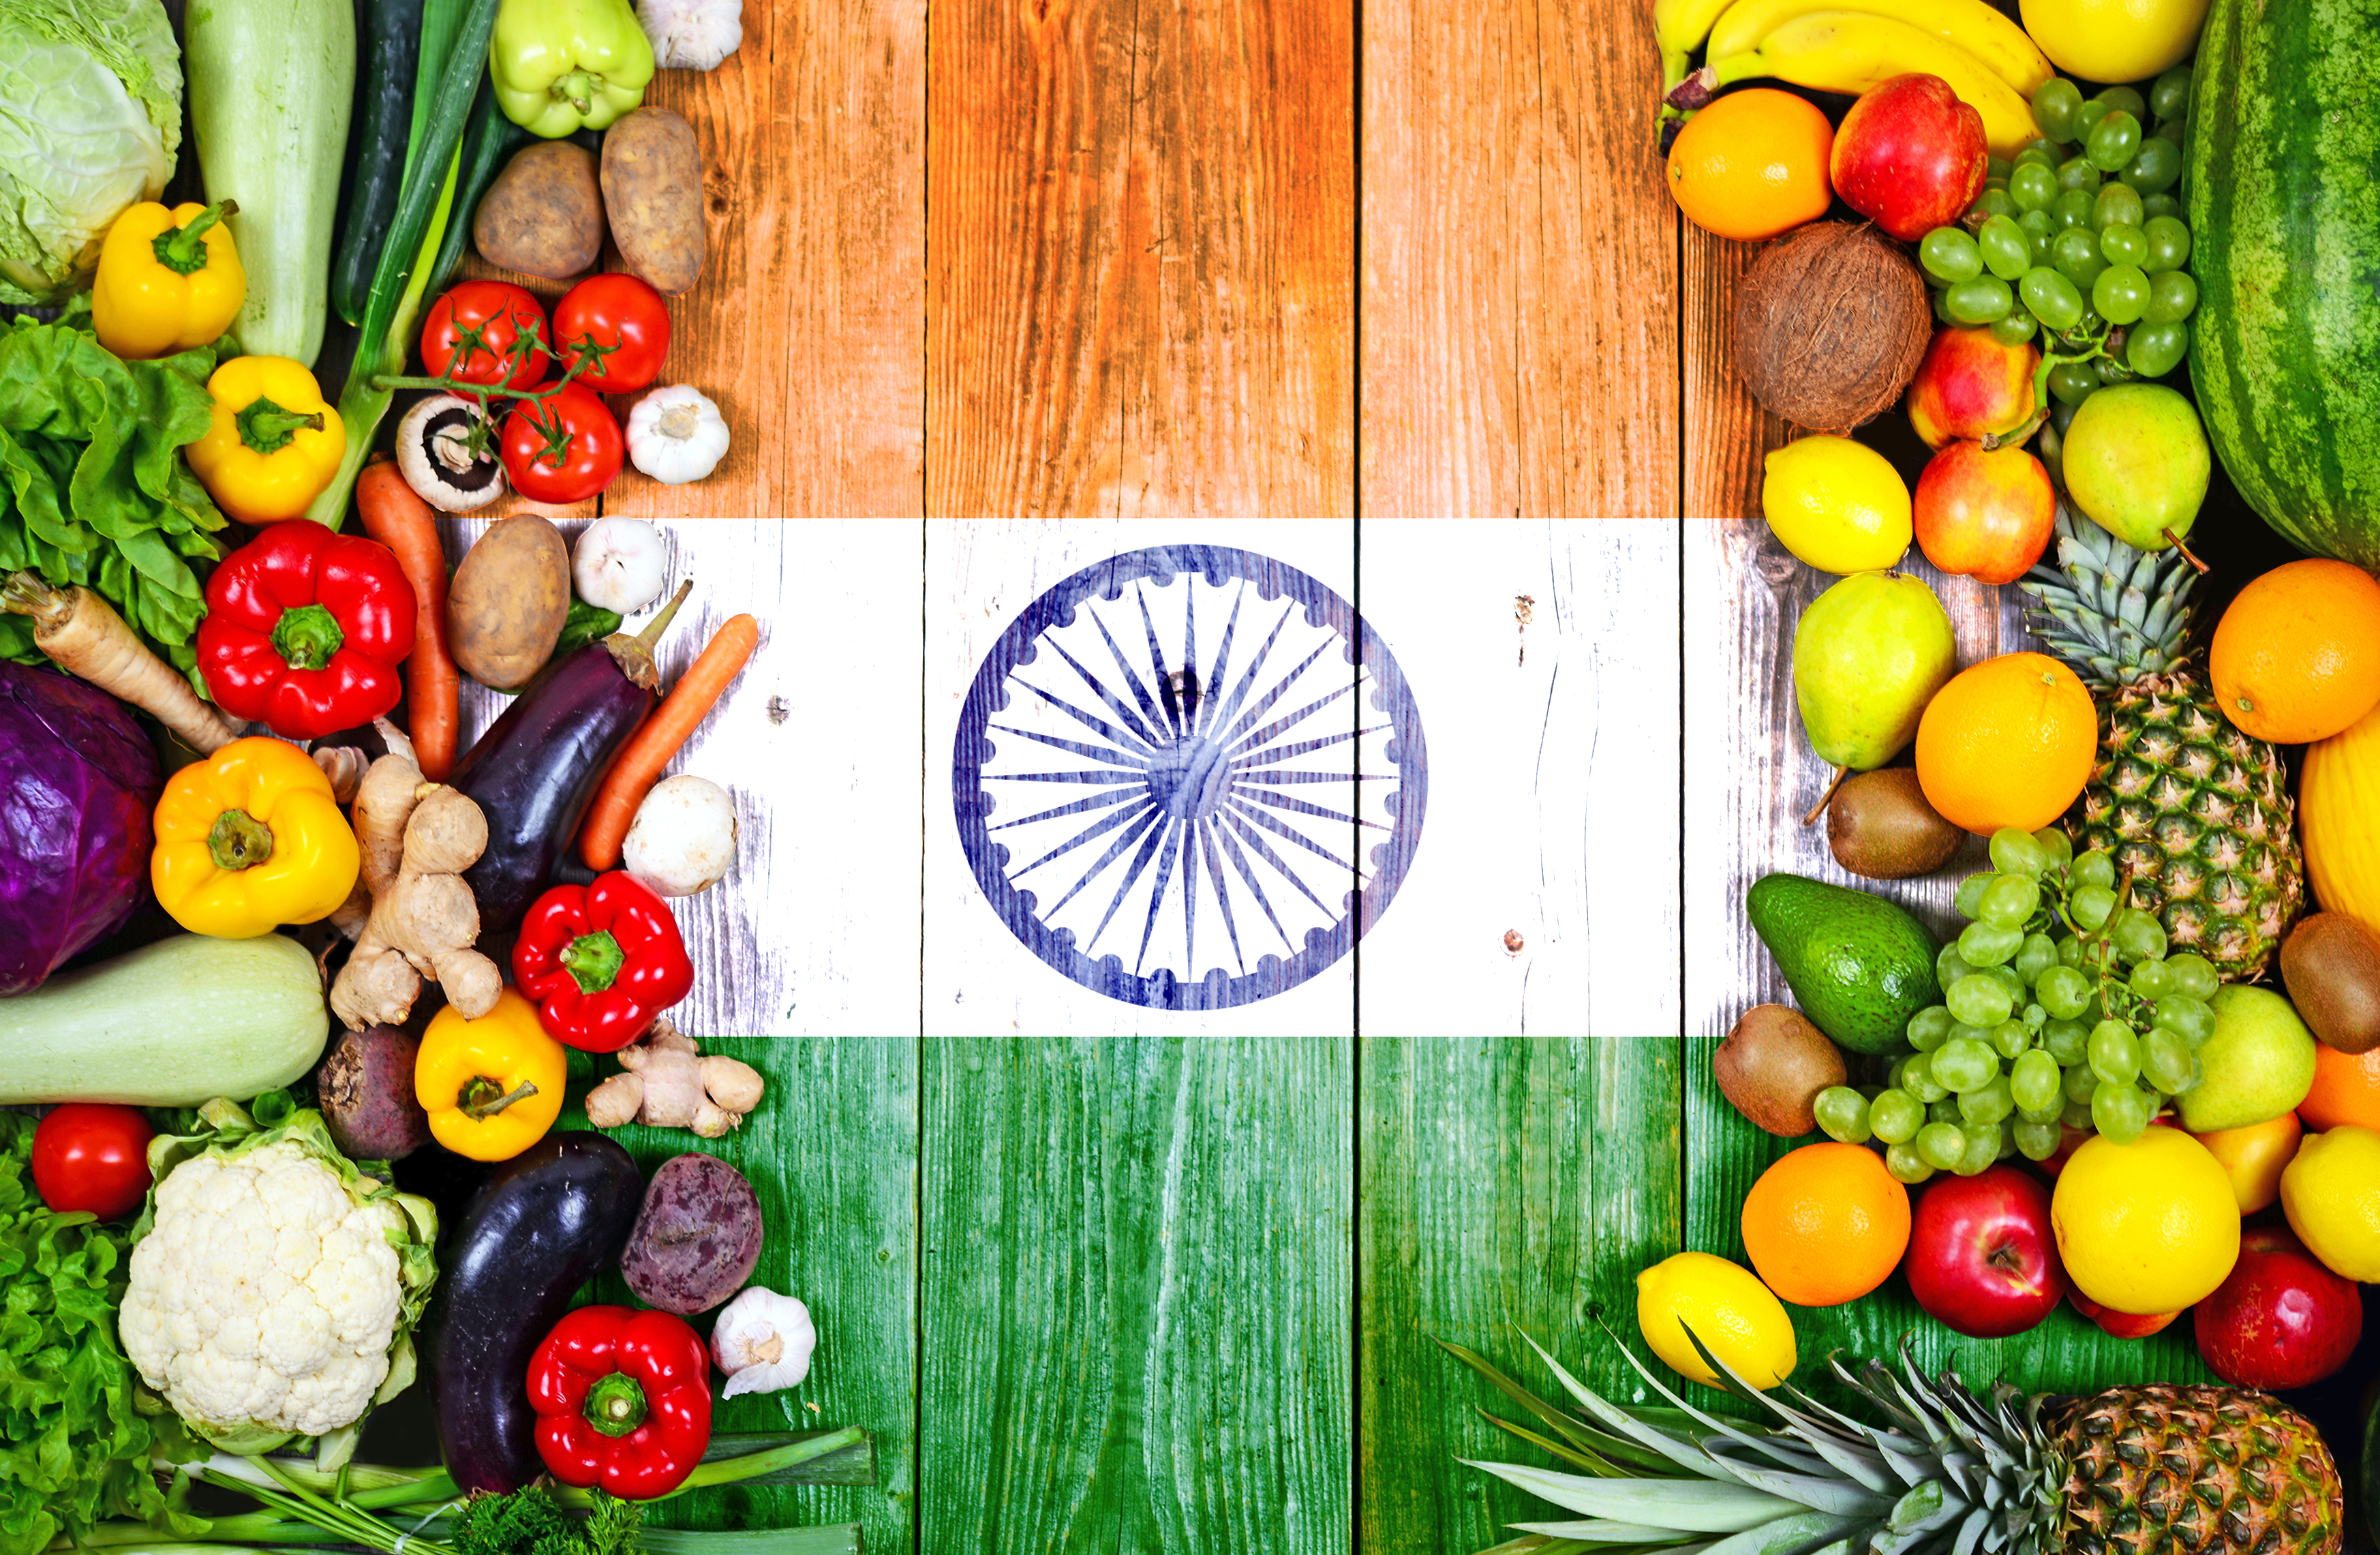 How to Start a Vegetable Export Business in India | Bizfluent